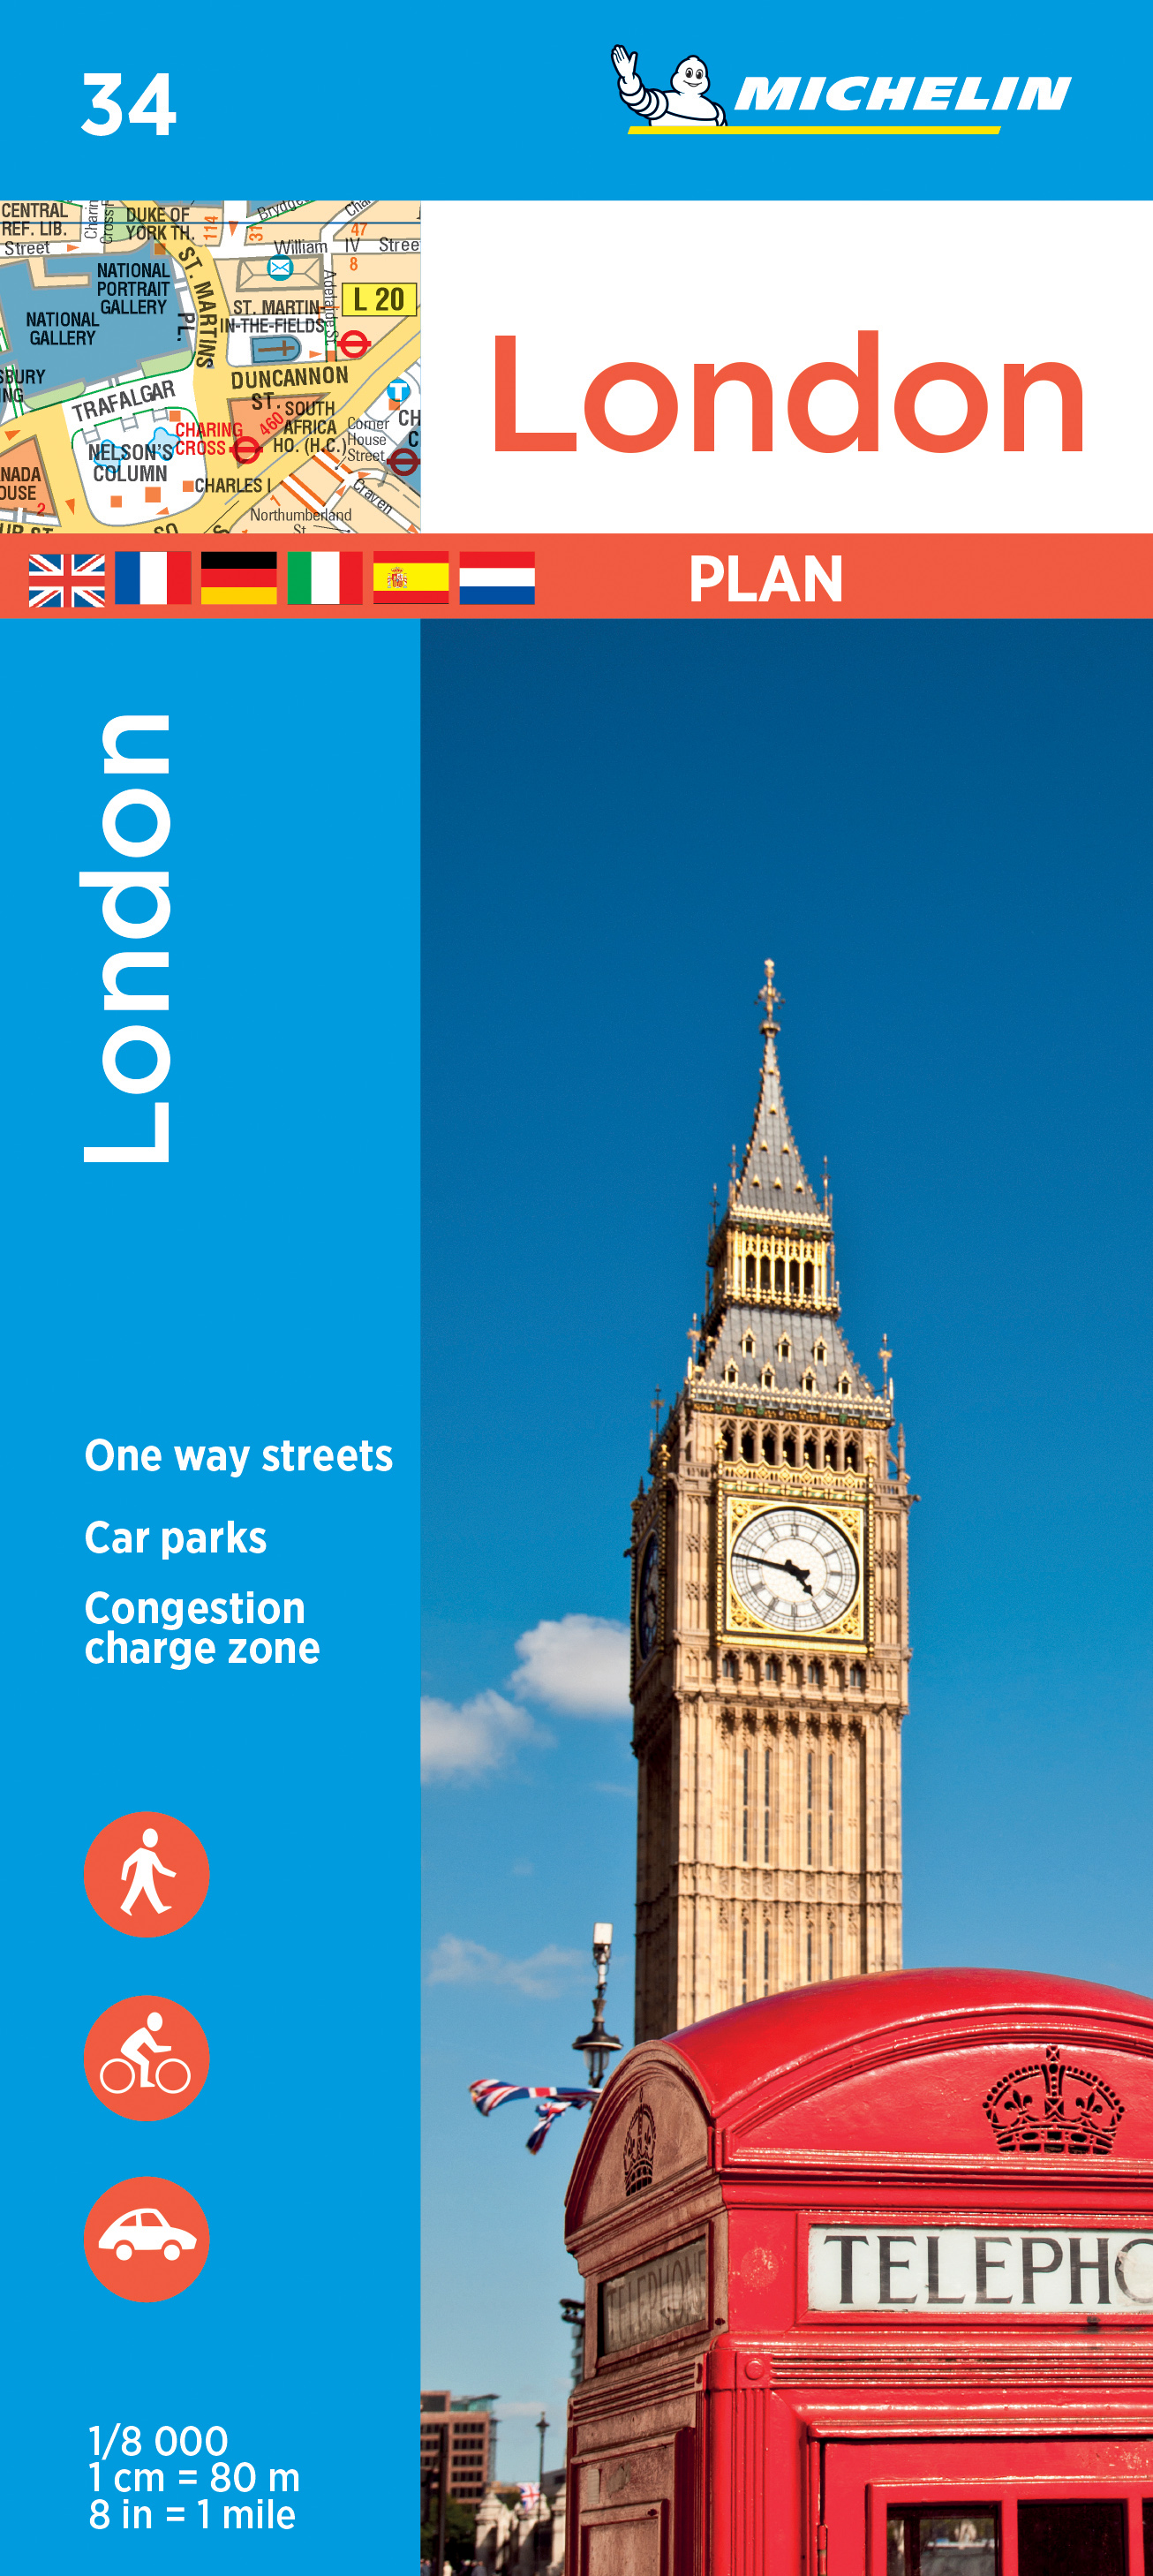 Stadsplattegrond 34 London - Londen | Michelin